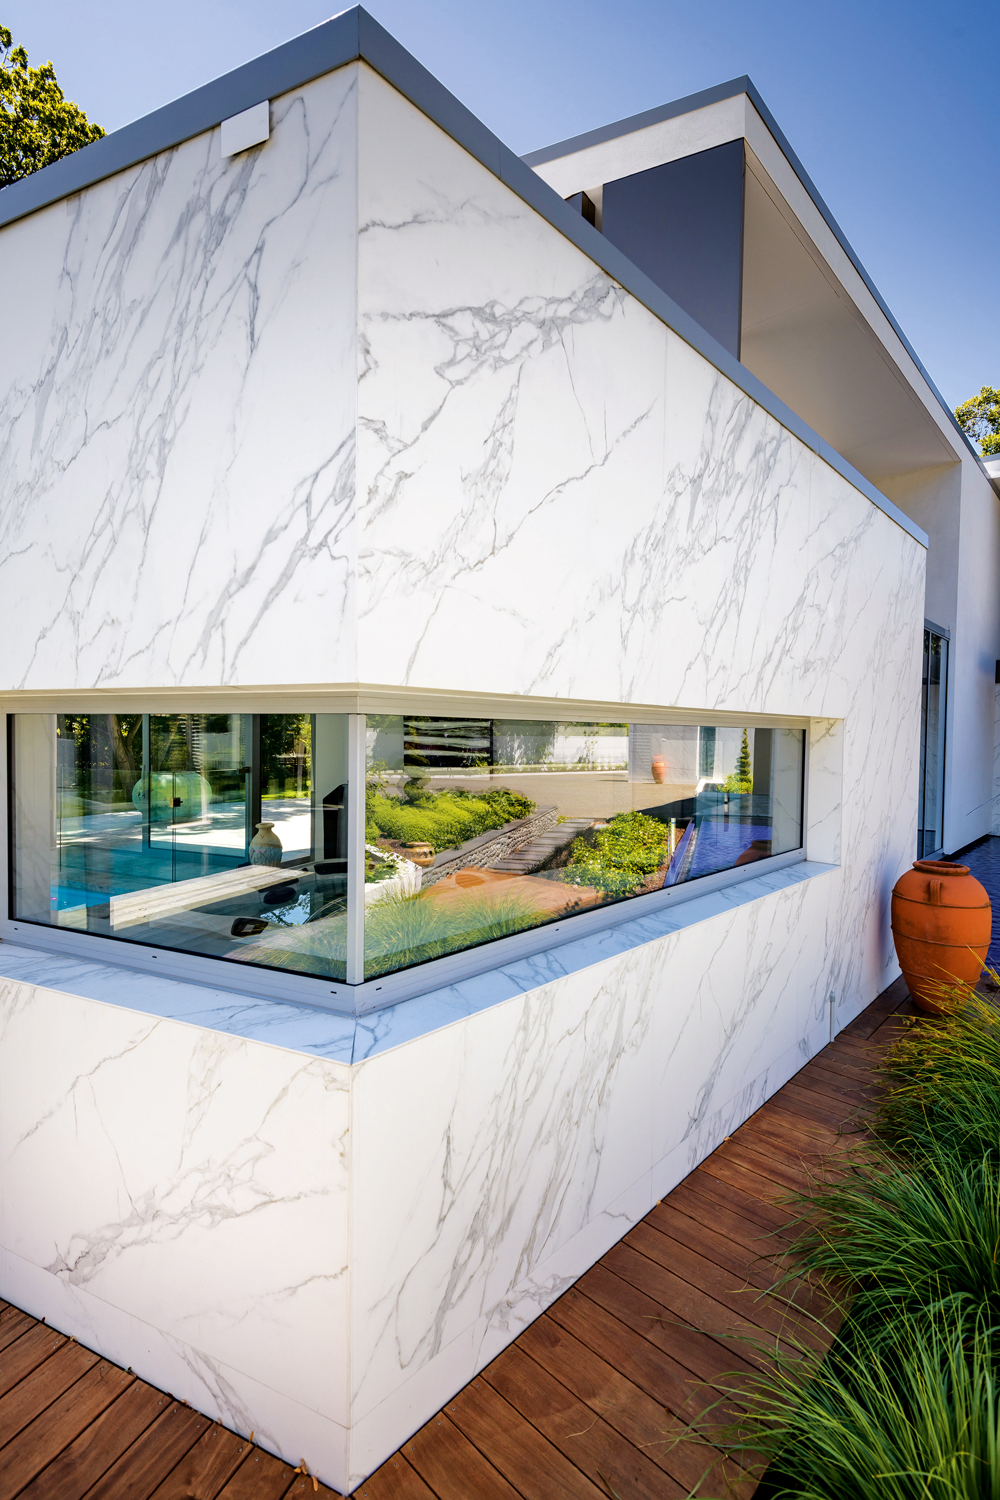 These facade systems help your home's exterior make a statement